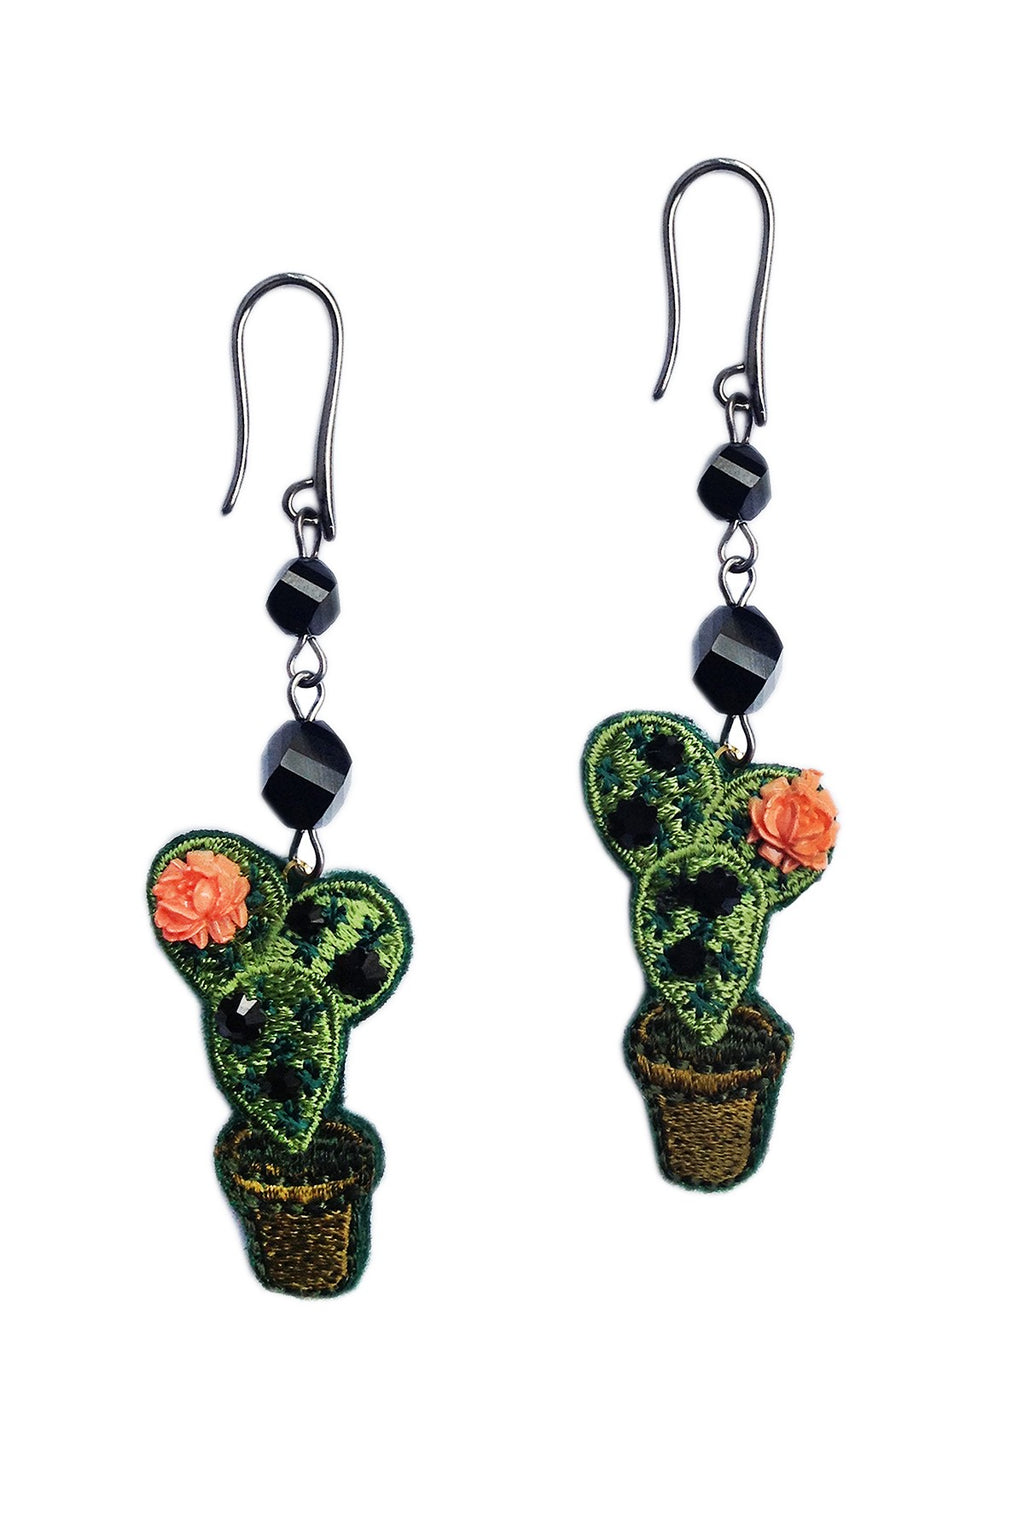 Small Cactus earrings